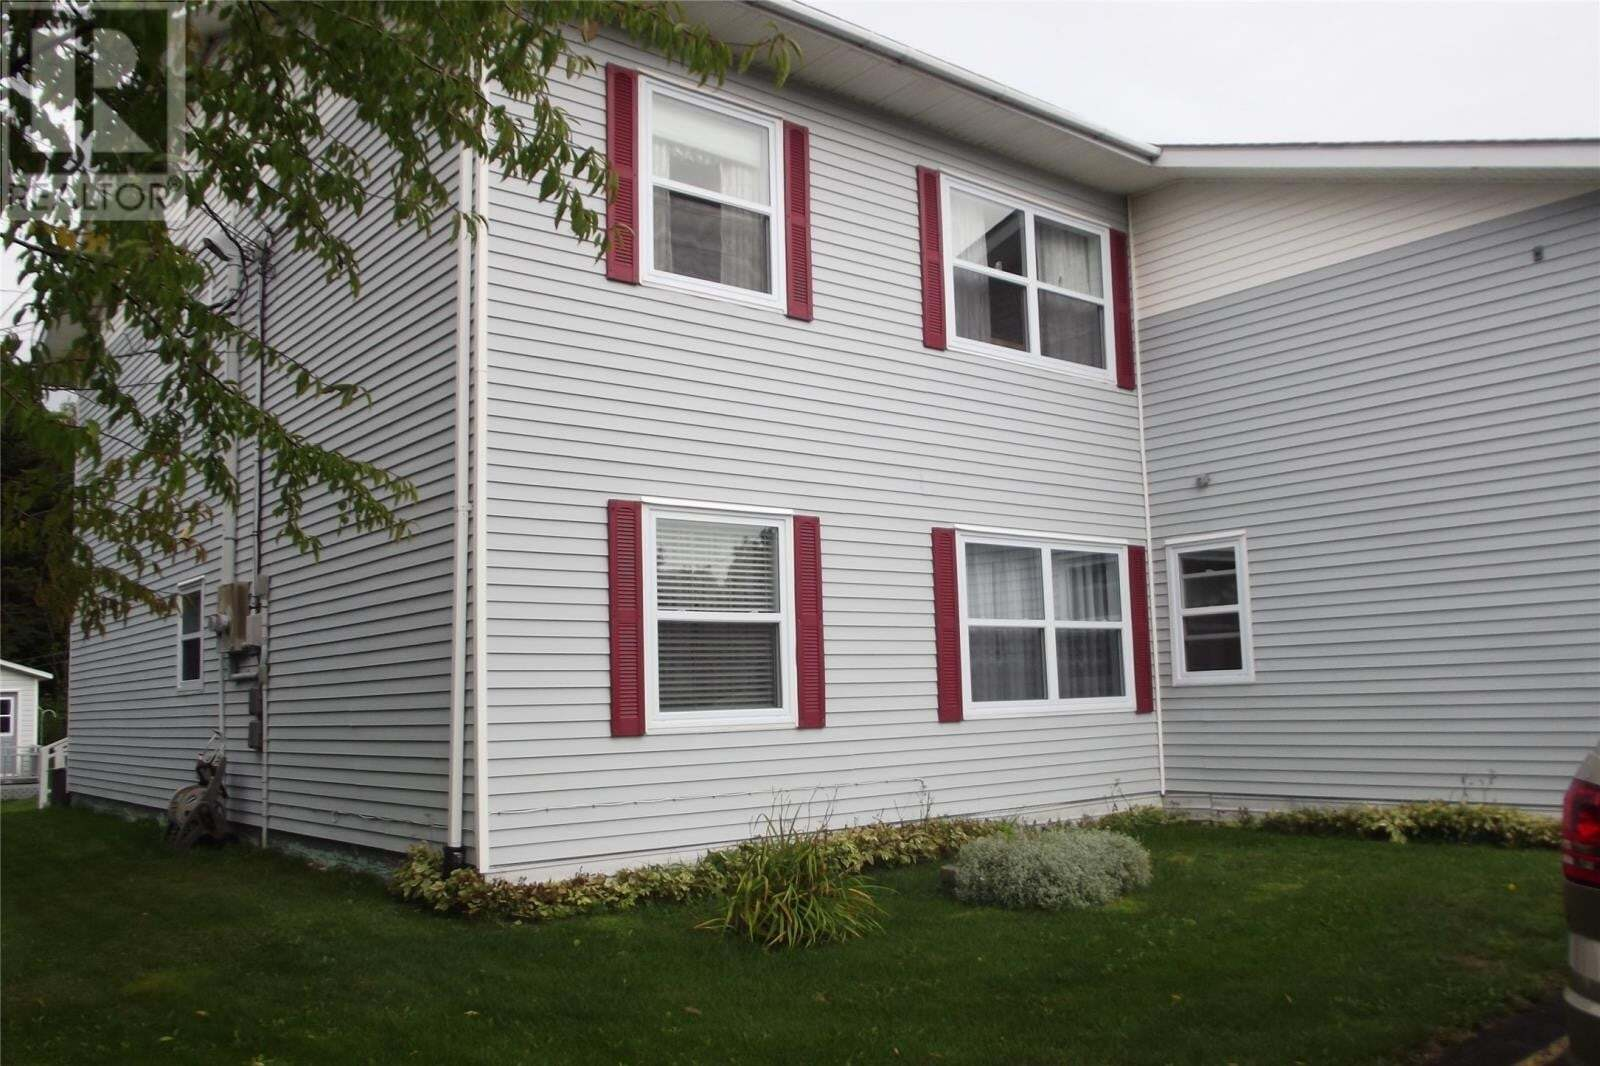 House for sale at 7 Cater Ave Grand Falls - Windsor Newfoundland - MLS: 1211405